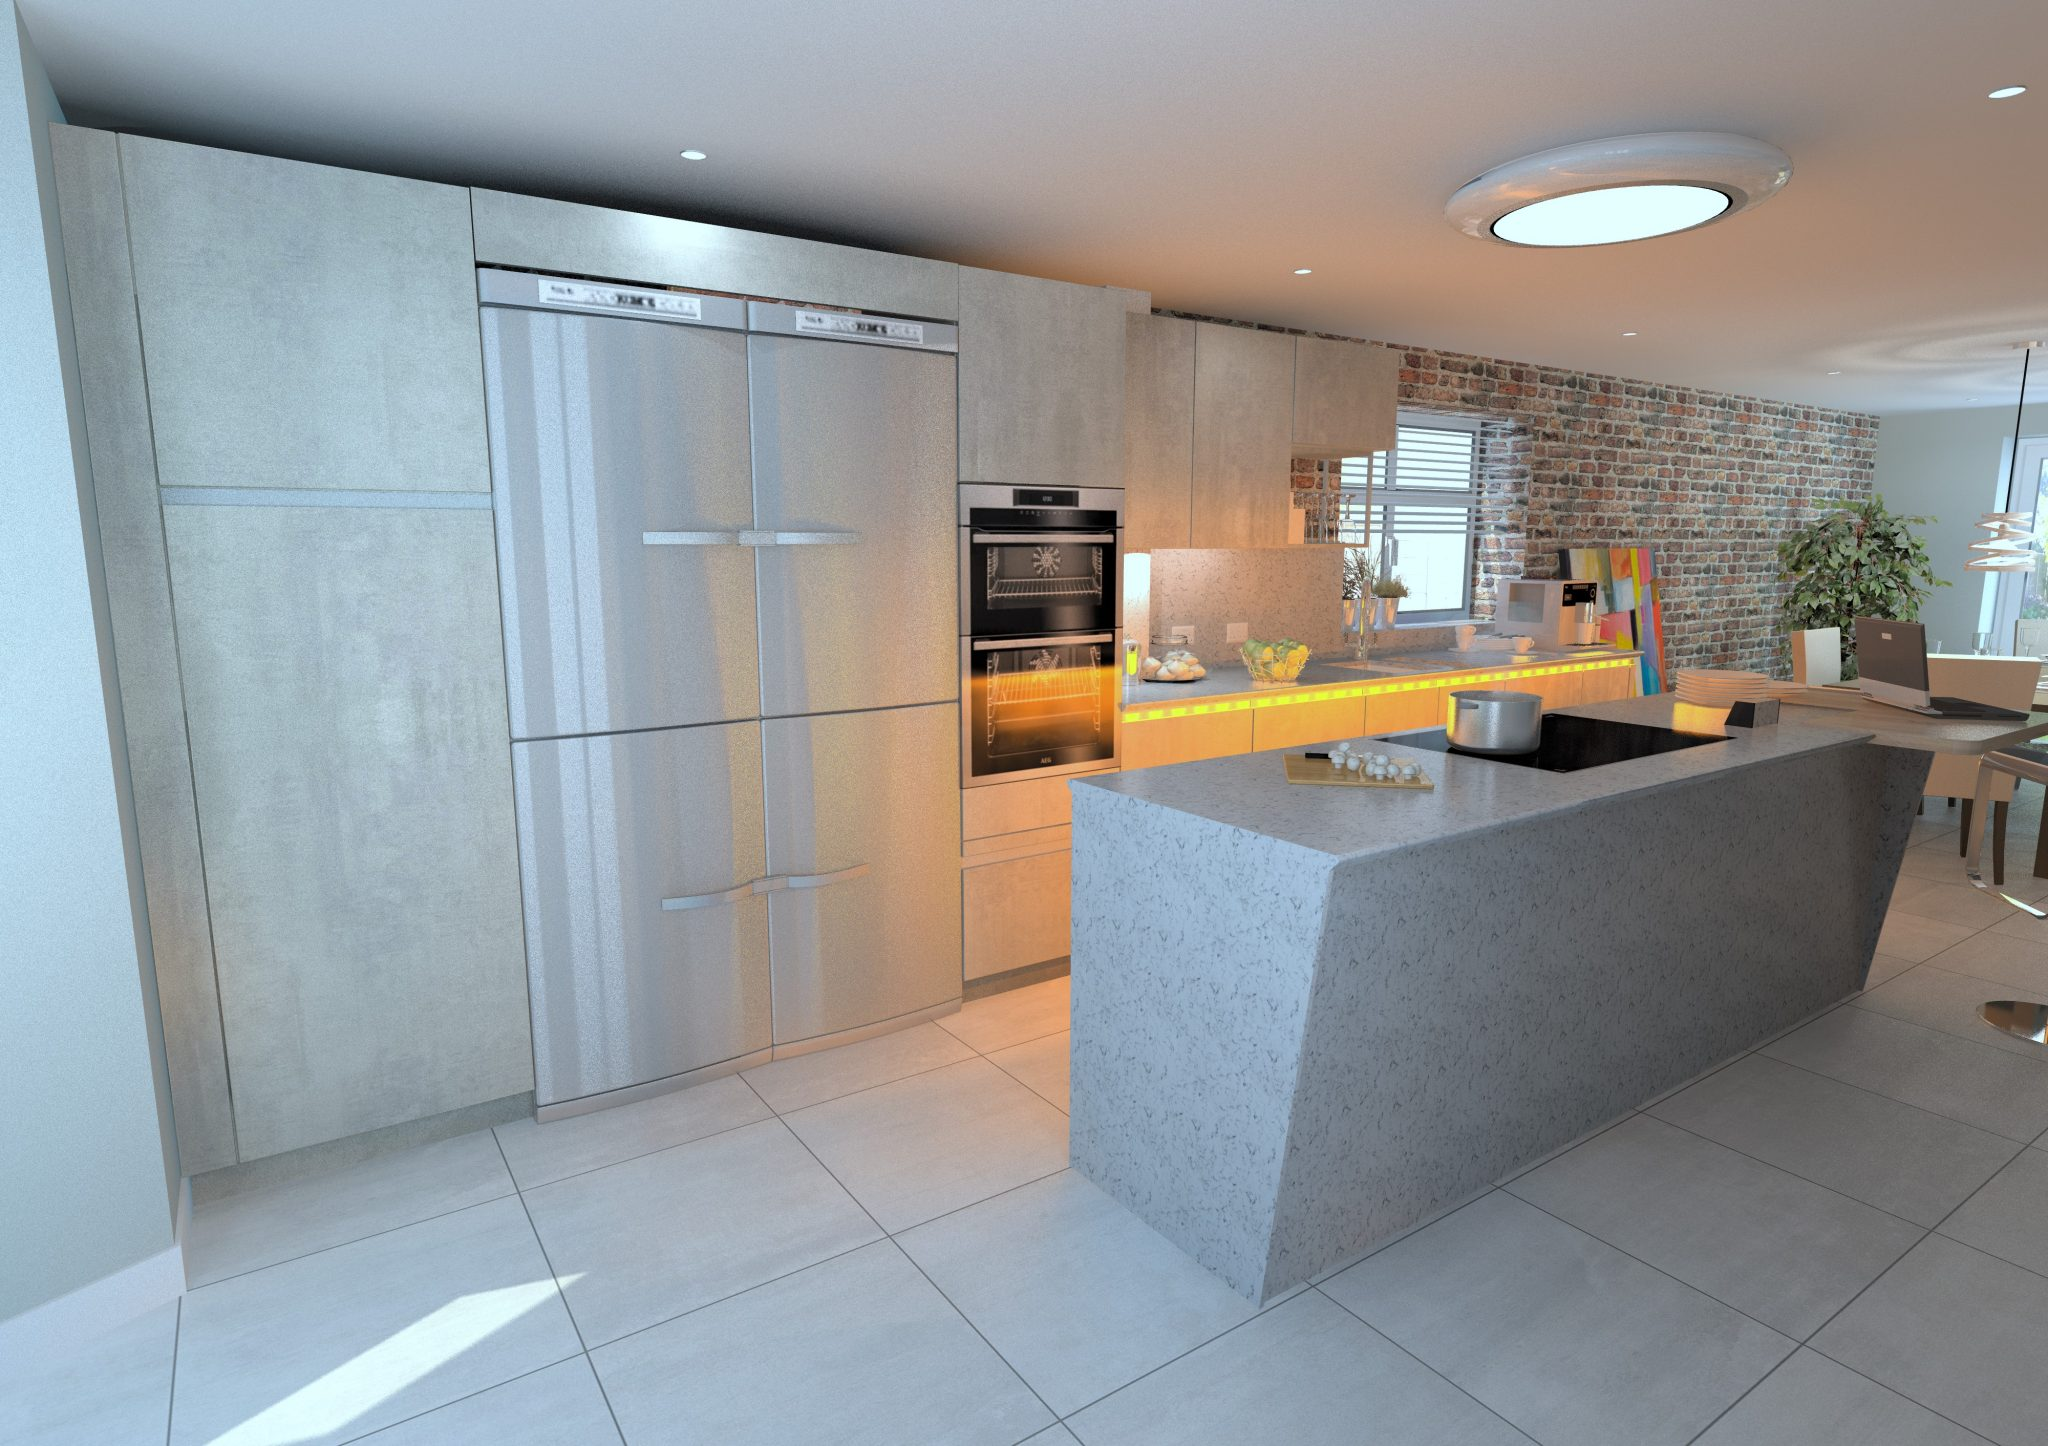 Time for a new kitchen or bathroom? - UKh2o